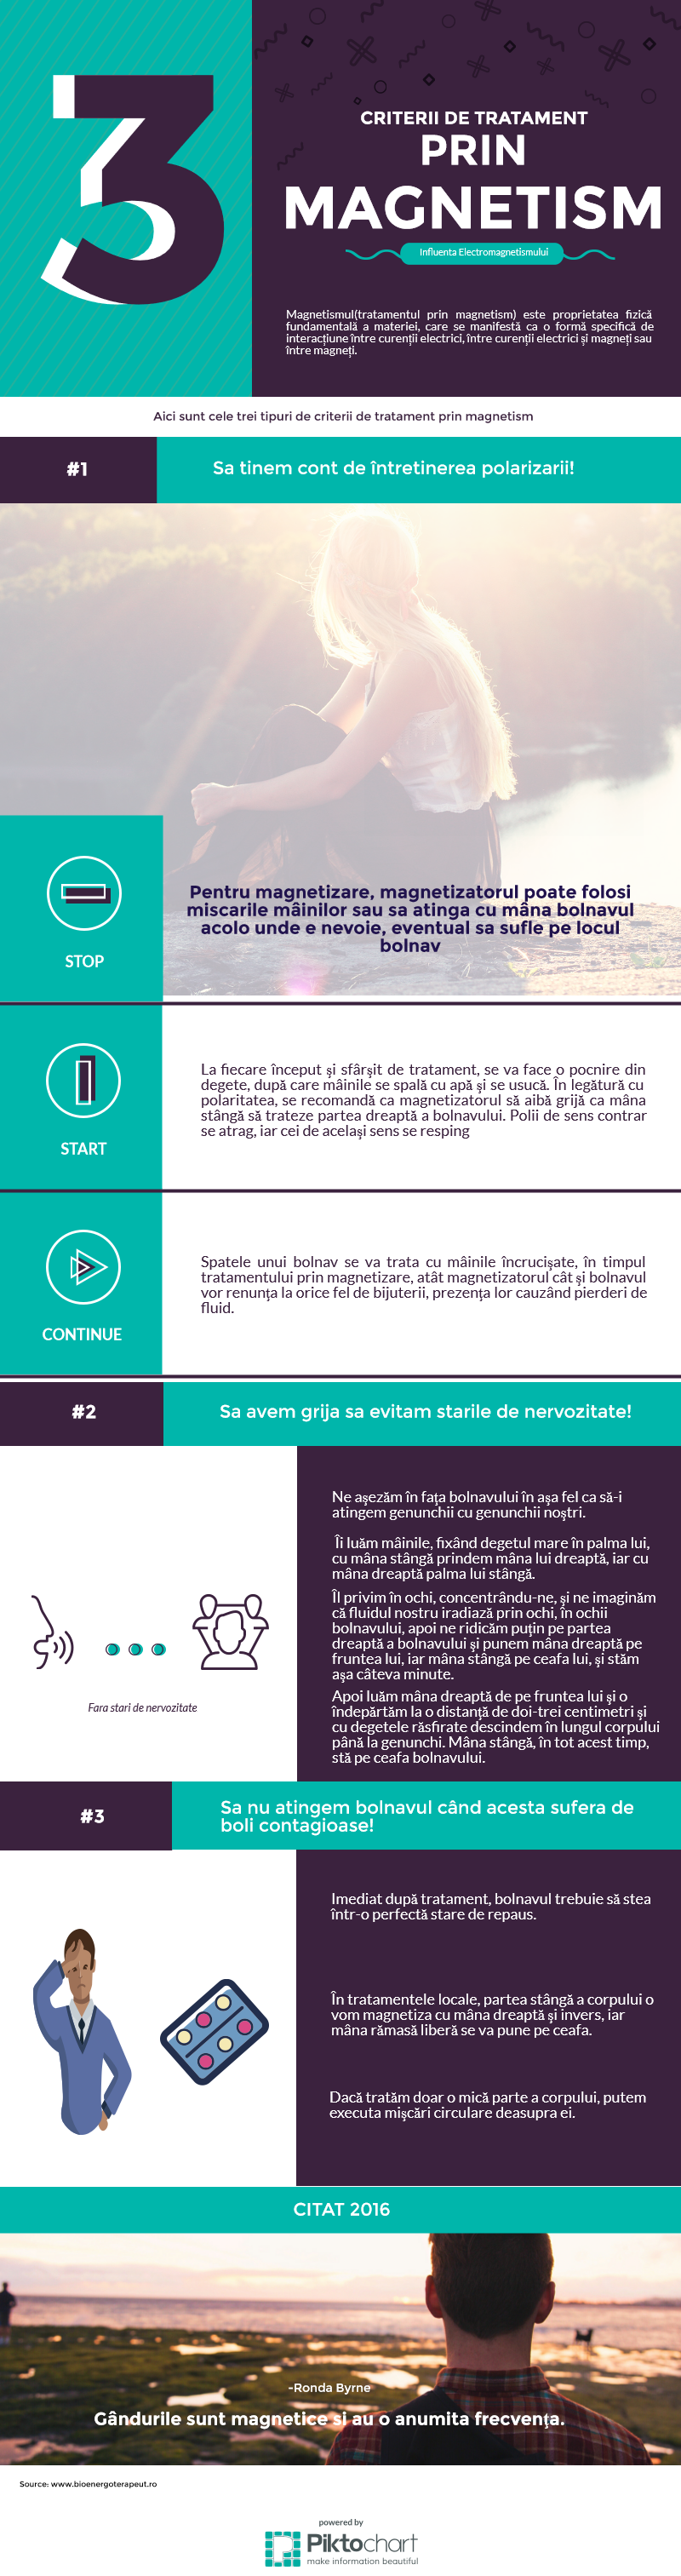 Untitled Infographic(5)